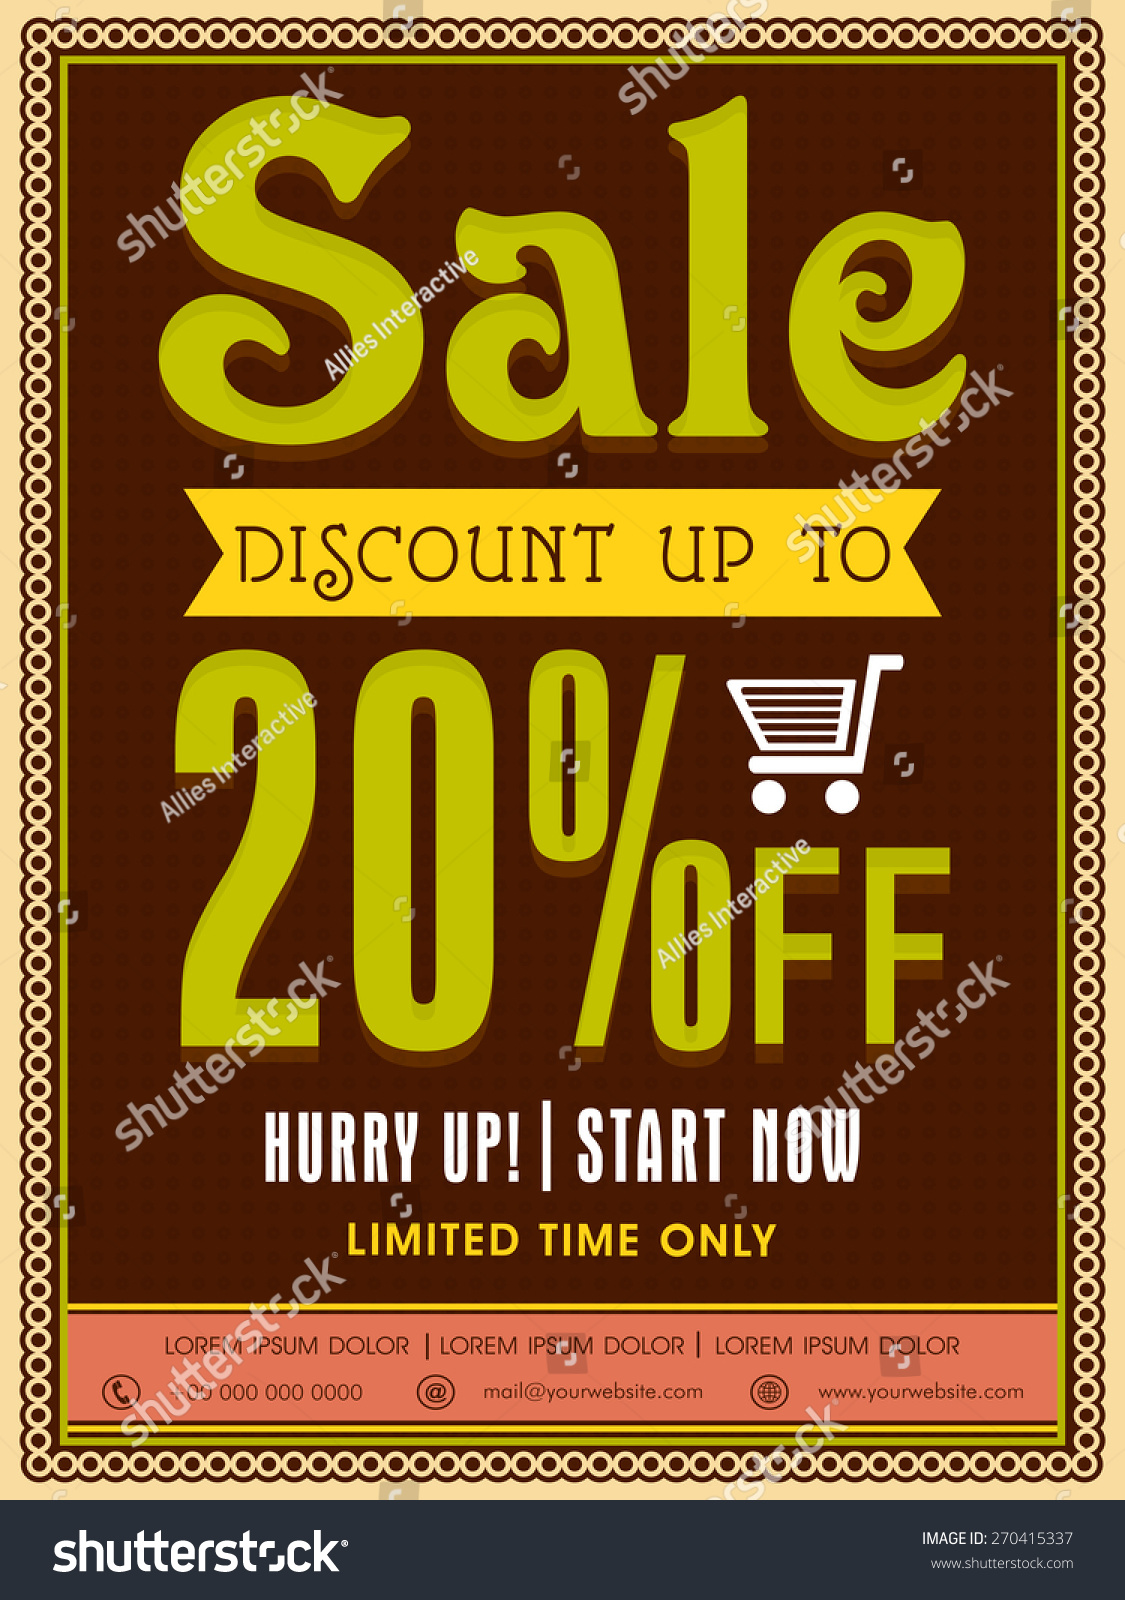 limited time poster banner flyer stock vector  limited time poster banner or flyer design discount offer